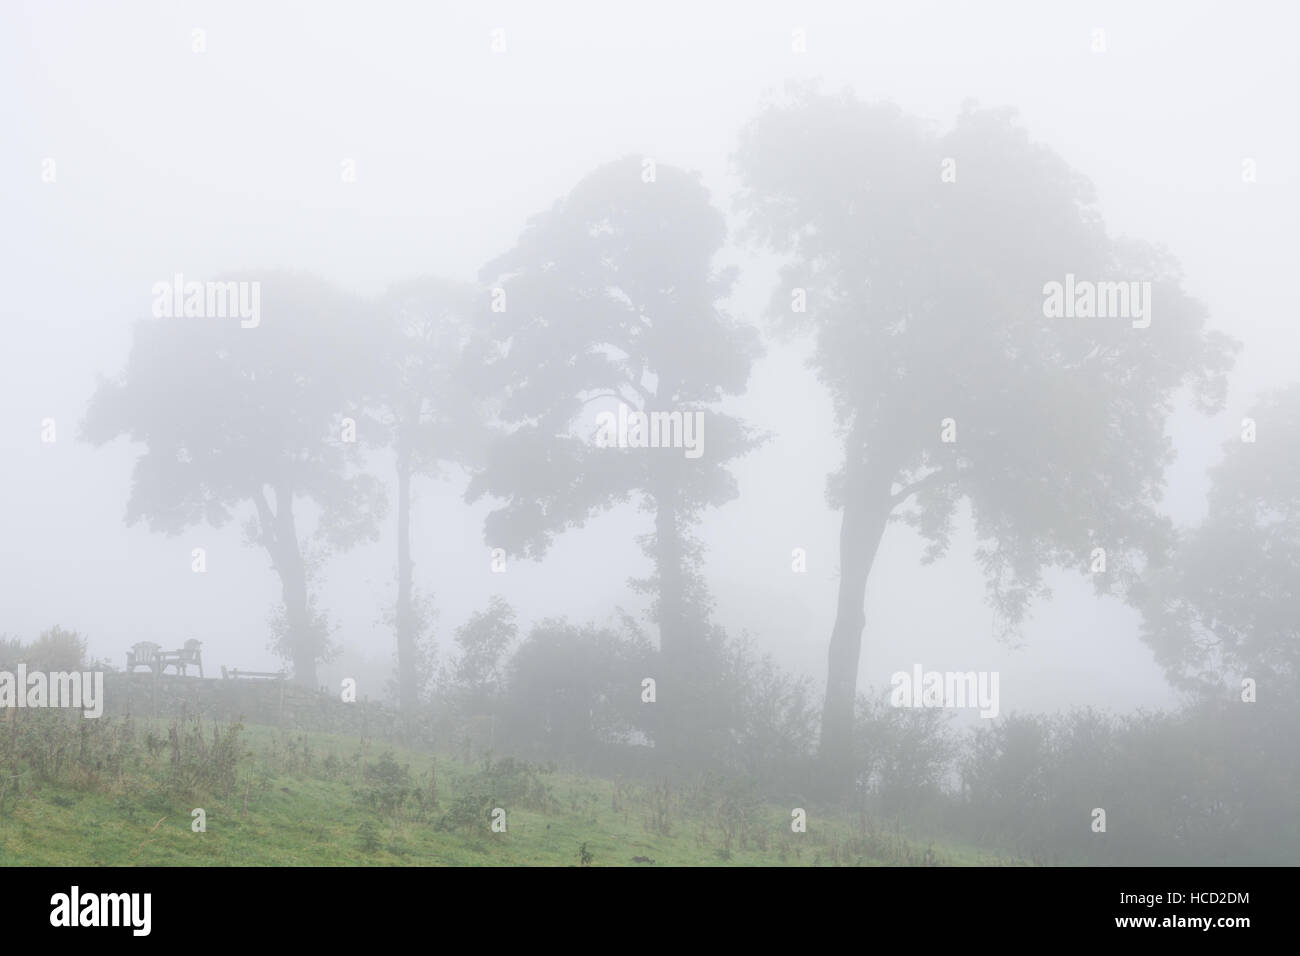 Trio of trees in the fog - Stock Image